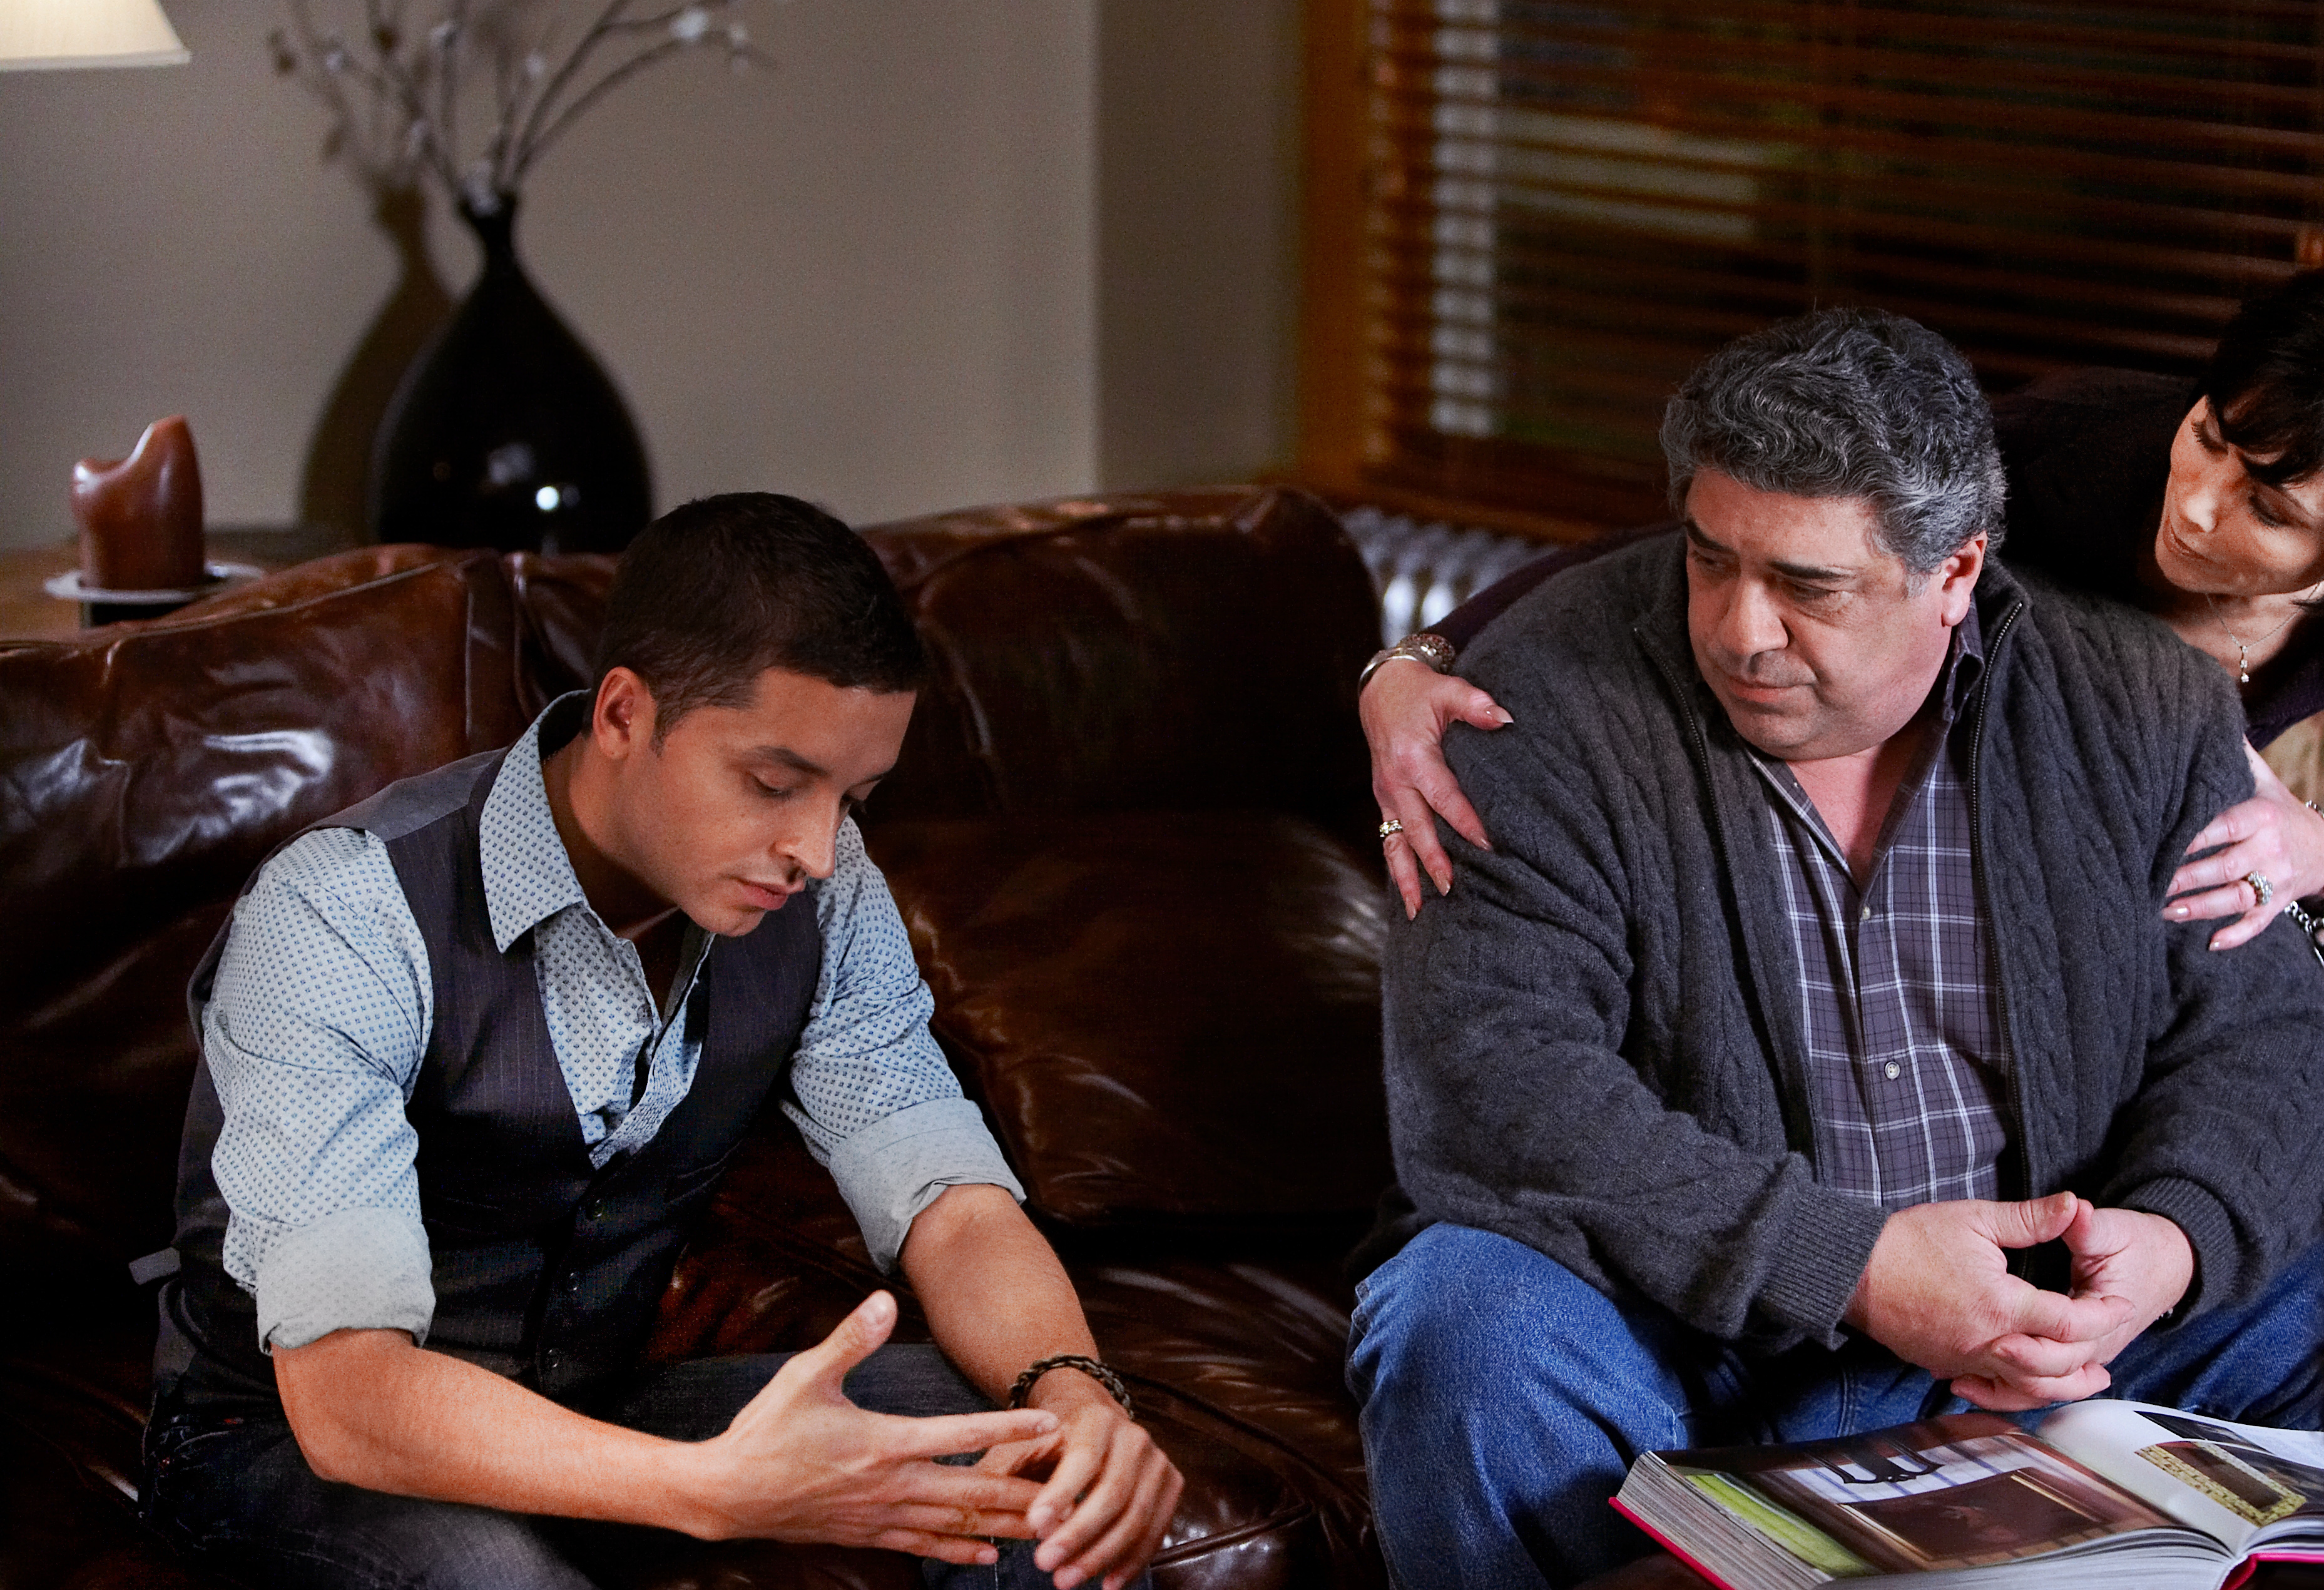 Oy Vey! My Son Is Gay! (2010) Movie Photos and Stills